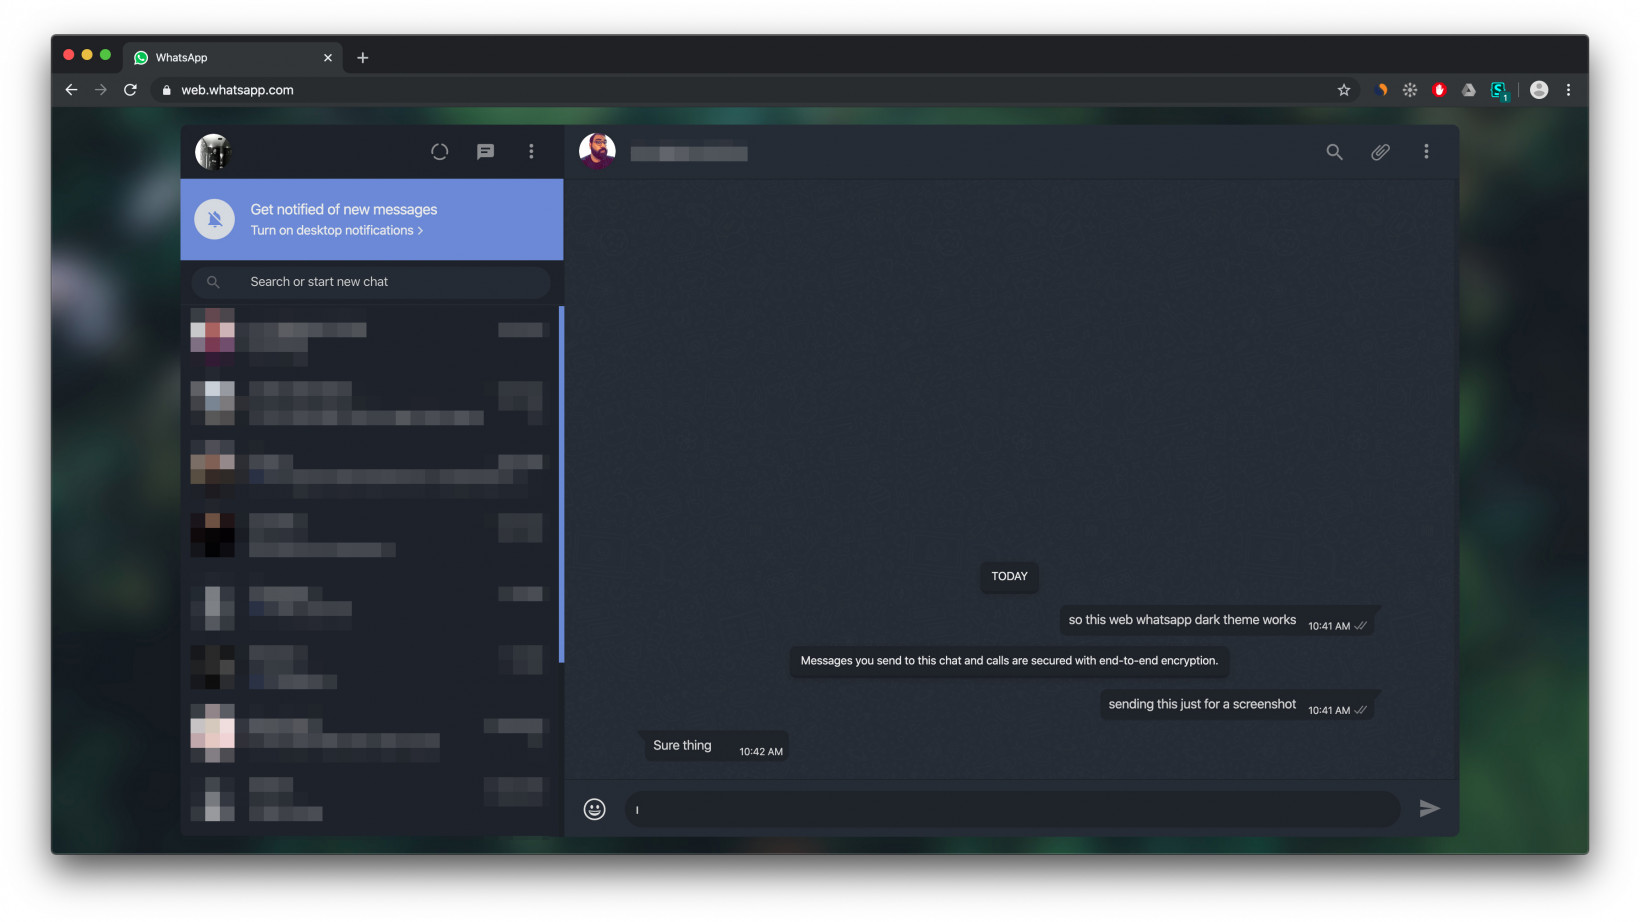 How To Enable Dark Mode On Whatsapp Web